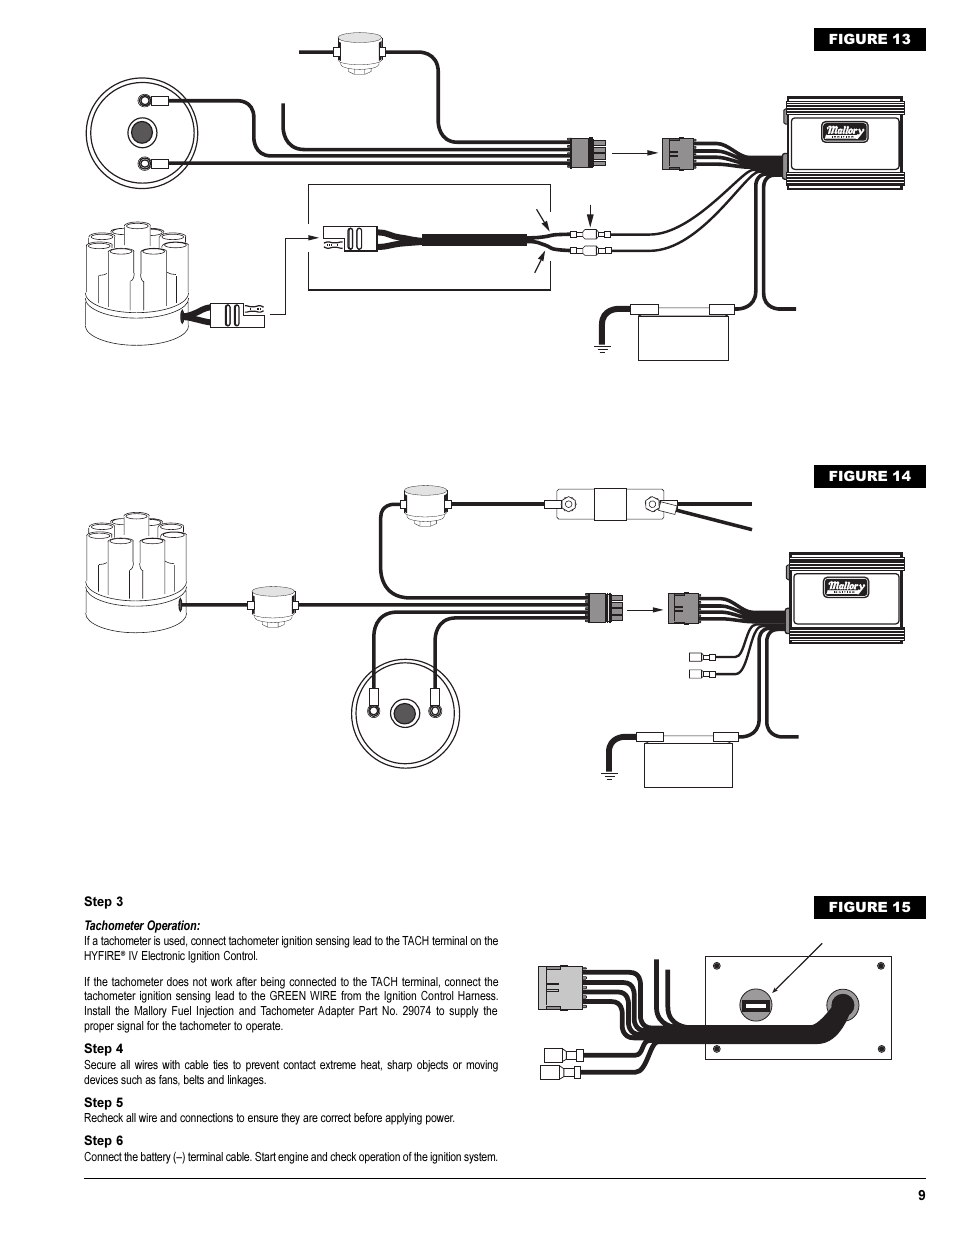 Mallory Hyfire Wiring Diagram Unilite Schematics Diagrams Msd 6al Comp 9000 Mallery Distributor Ignition Mag 6021 6a